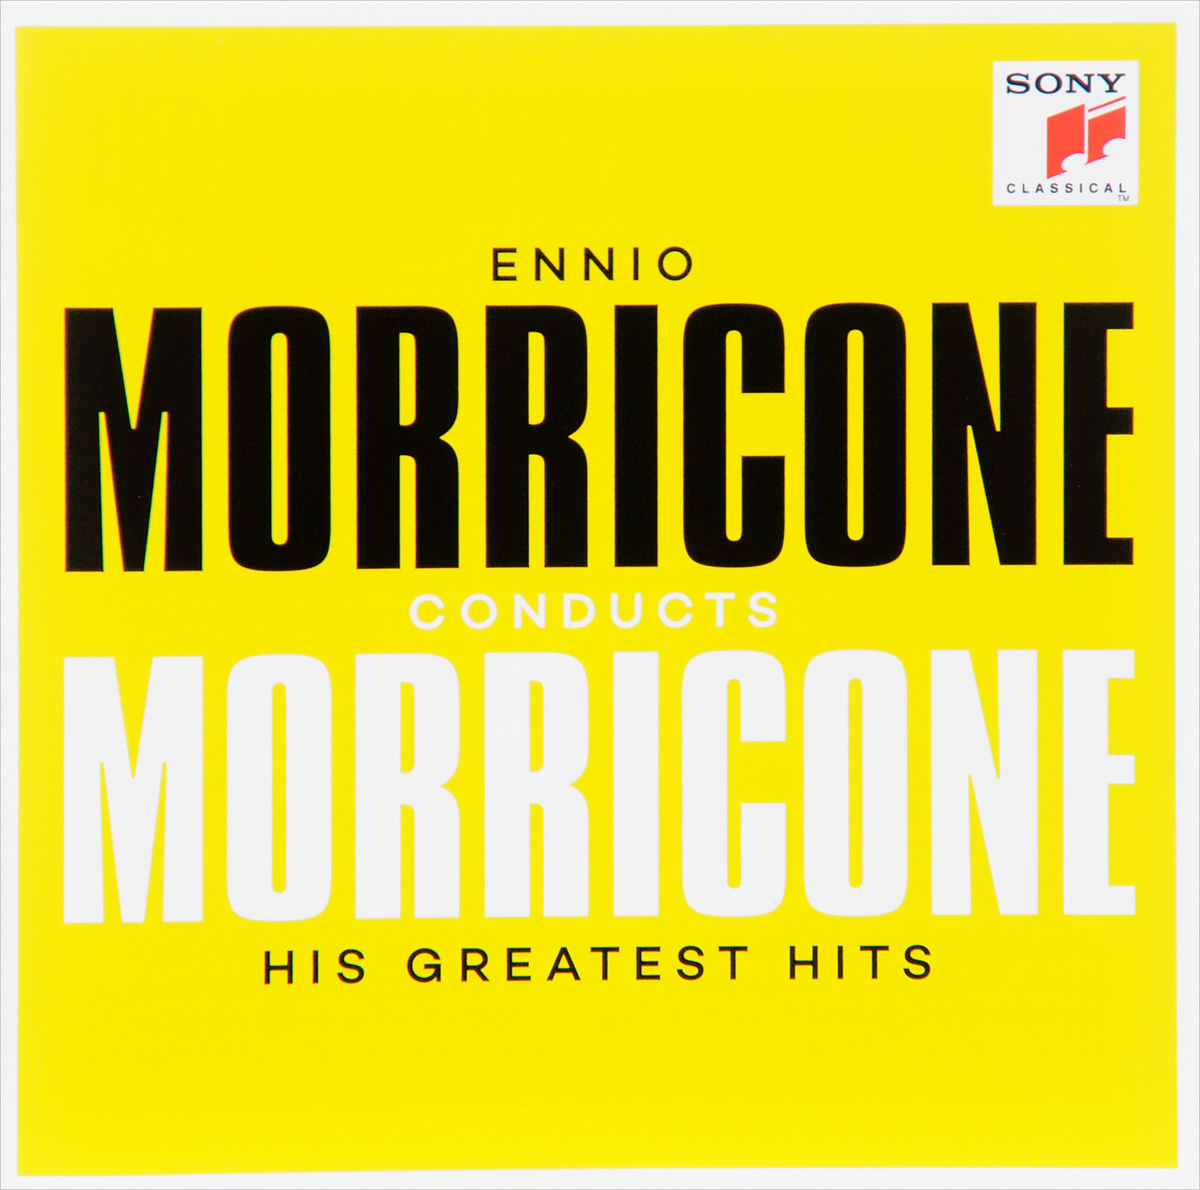 Ennio Morricone. Ennio Morricone Conducts Morricone. His Greatest Hits